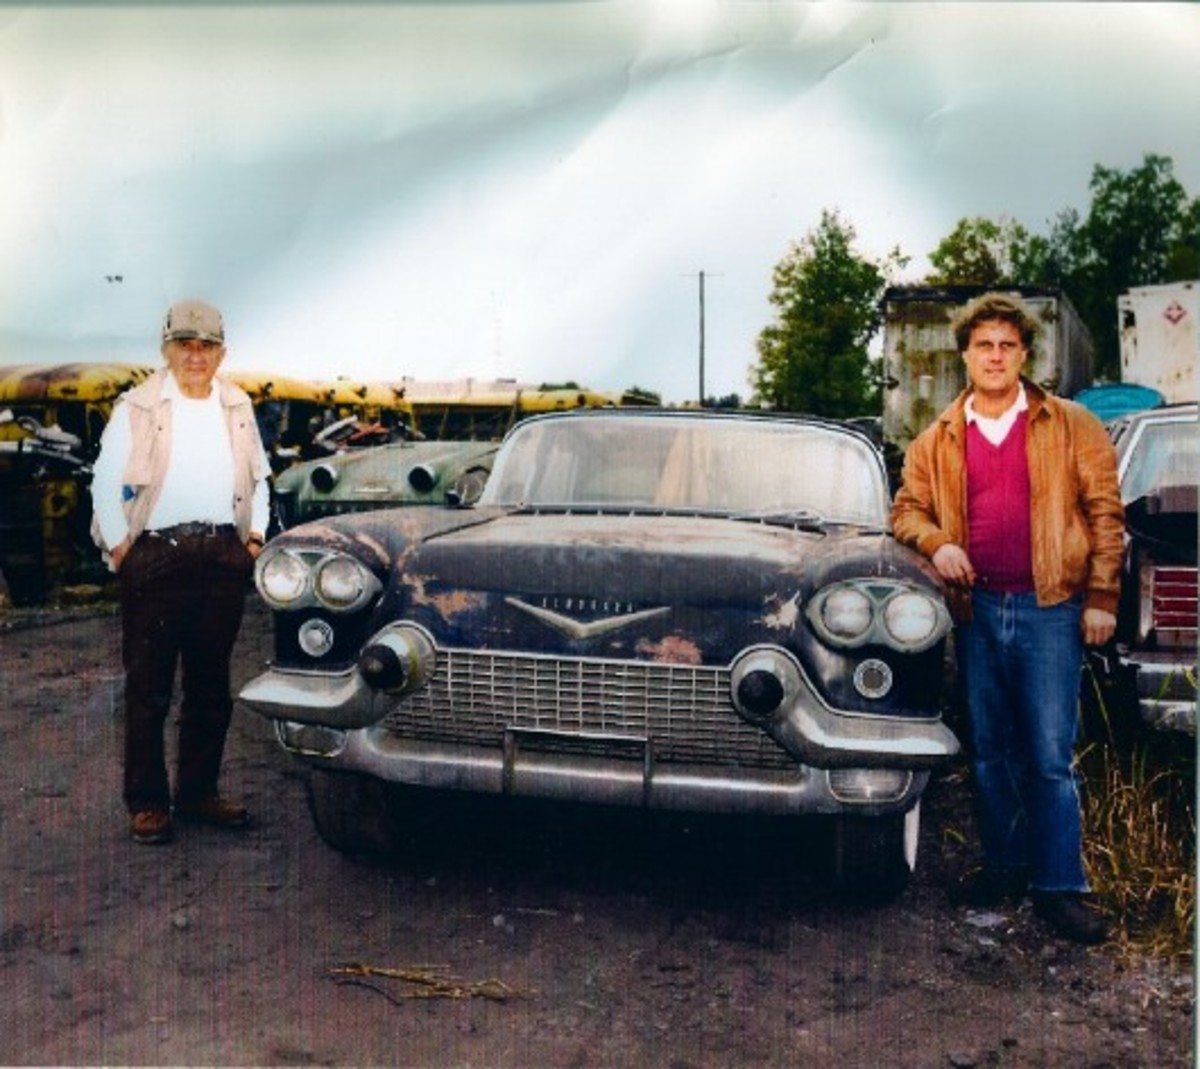 The 1956 Cadillac Eldorado Brougham Town Car concept at Warhoops with Harry Warholak Sr. (left) and Harry Warholak Jr. (right) in 1988.